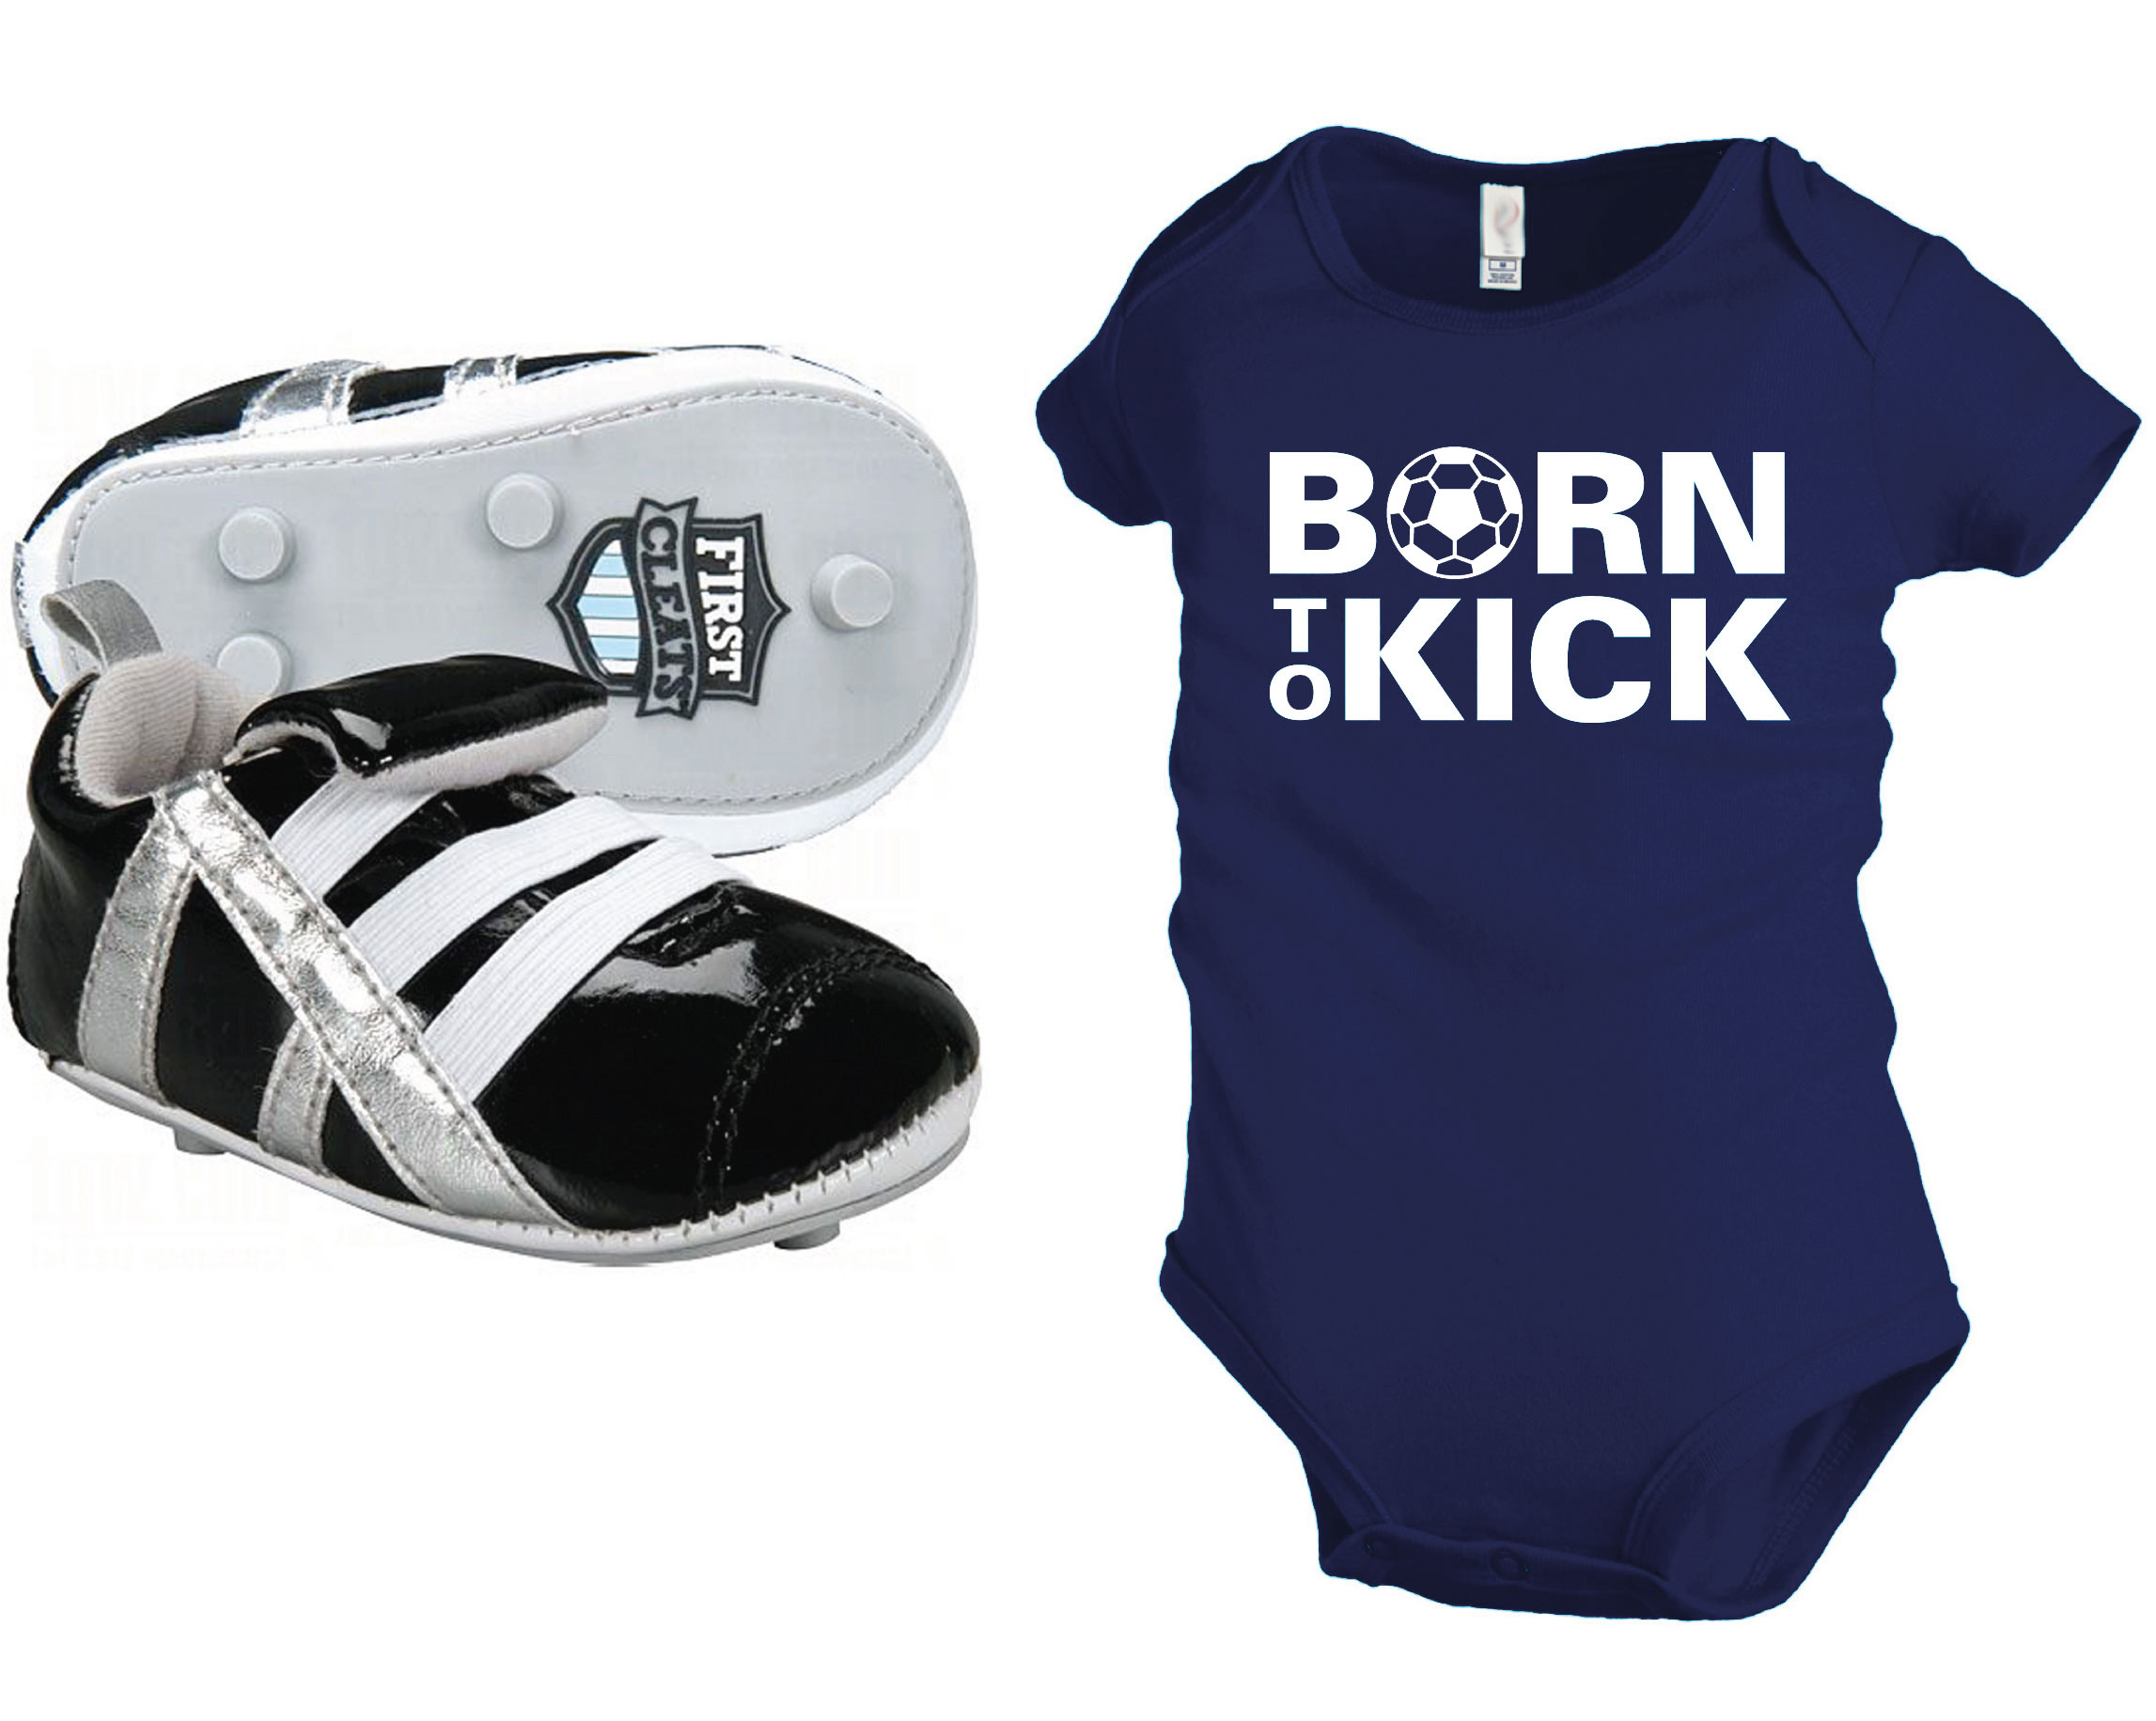 First Cleats baby soccer shoes with navy Born To Kick onesie by Code Four Athletics